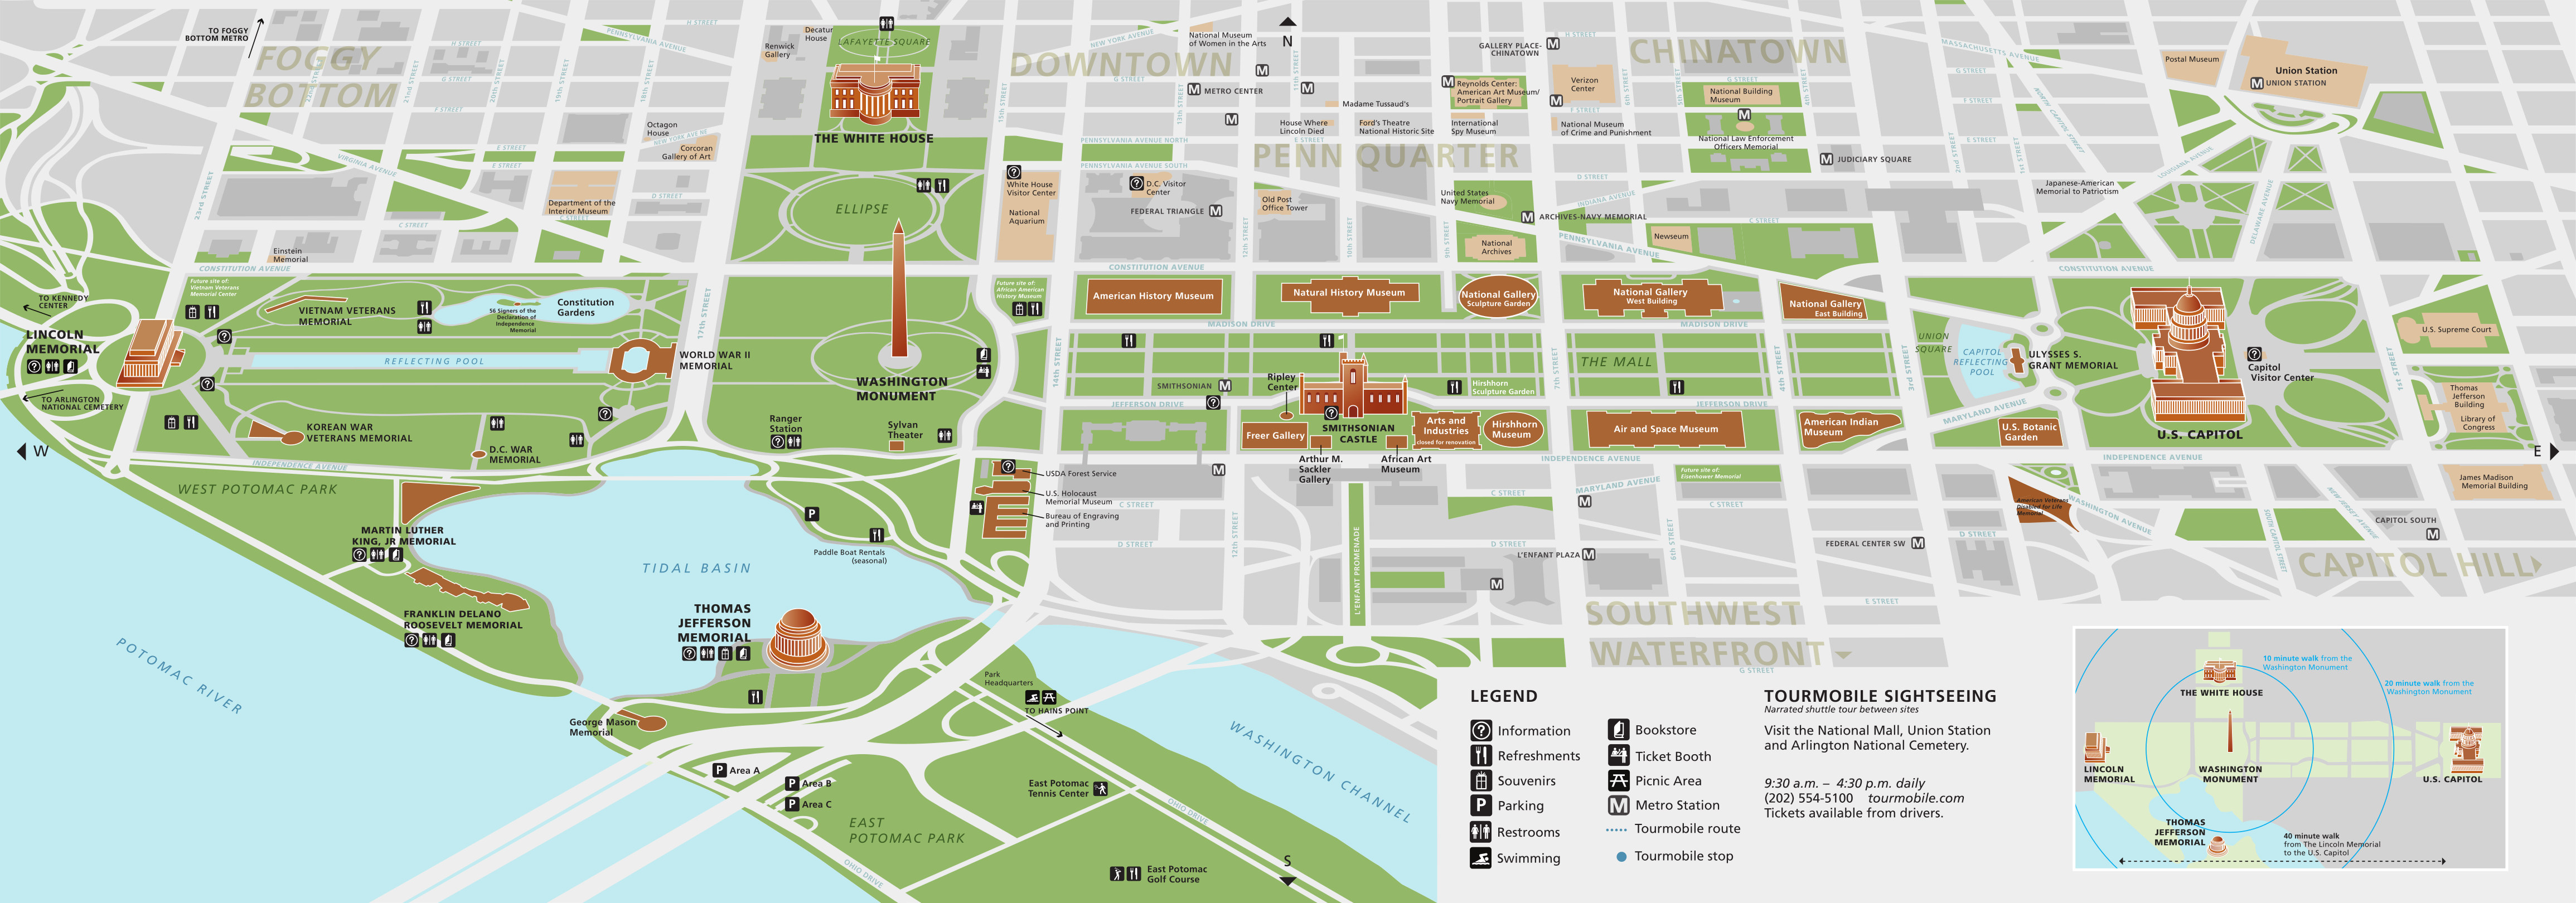 National Mall Maps | Npmaps - Just Free Maps, Period. - Printable Street Map Of Washington Dc